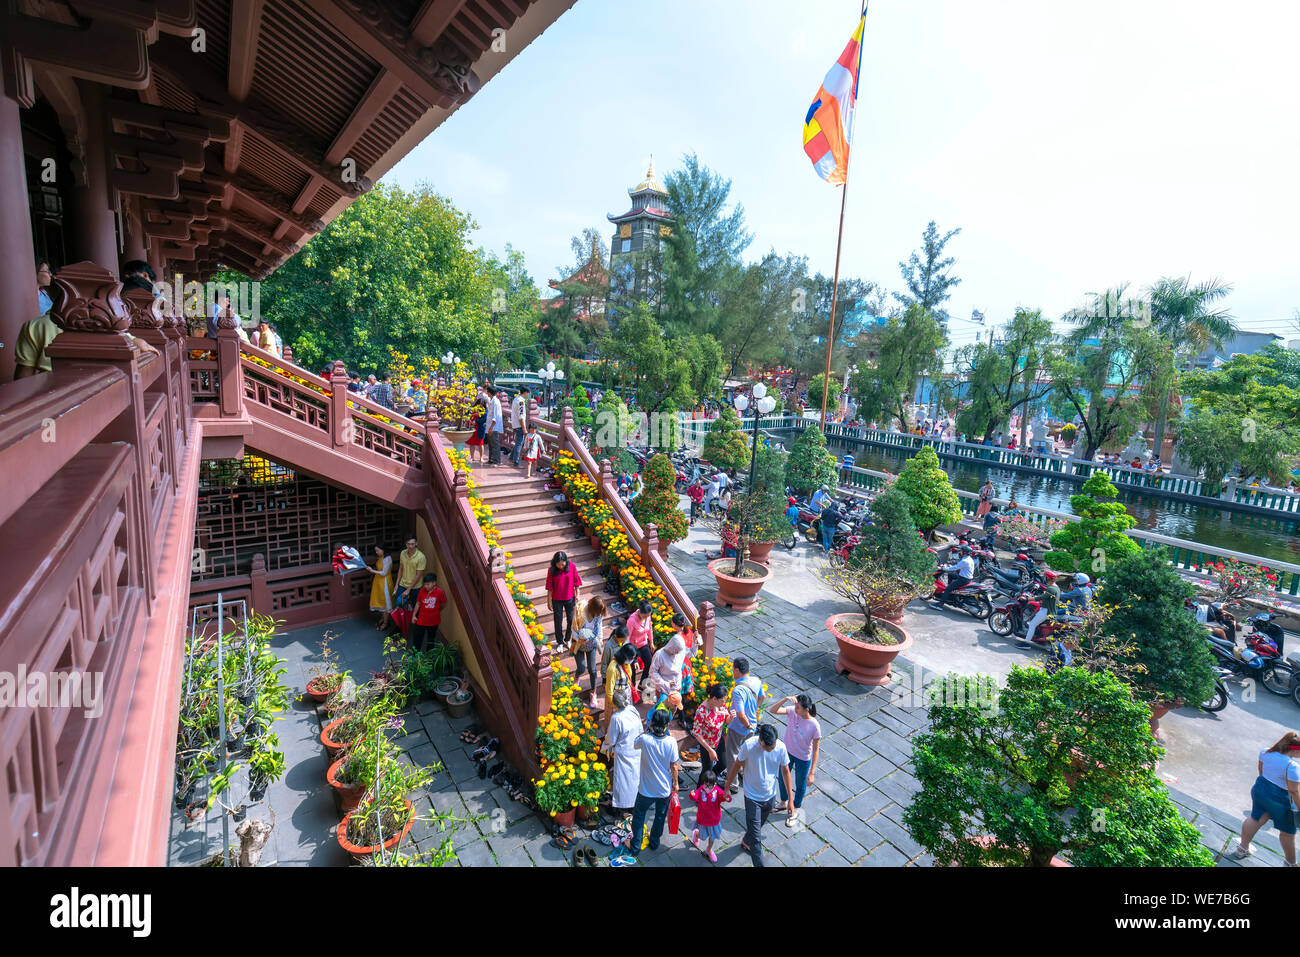 Architecture temple in  morning lunar new year decorated flowers front yard attracted  Buddhists visit cultural spiritual in Ho Chi Minh, Vietnam Stock Photo